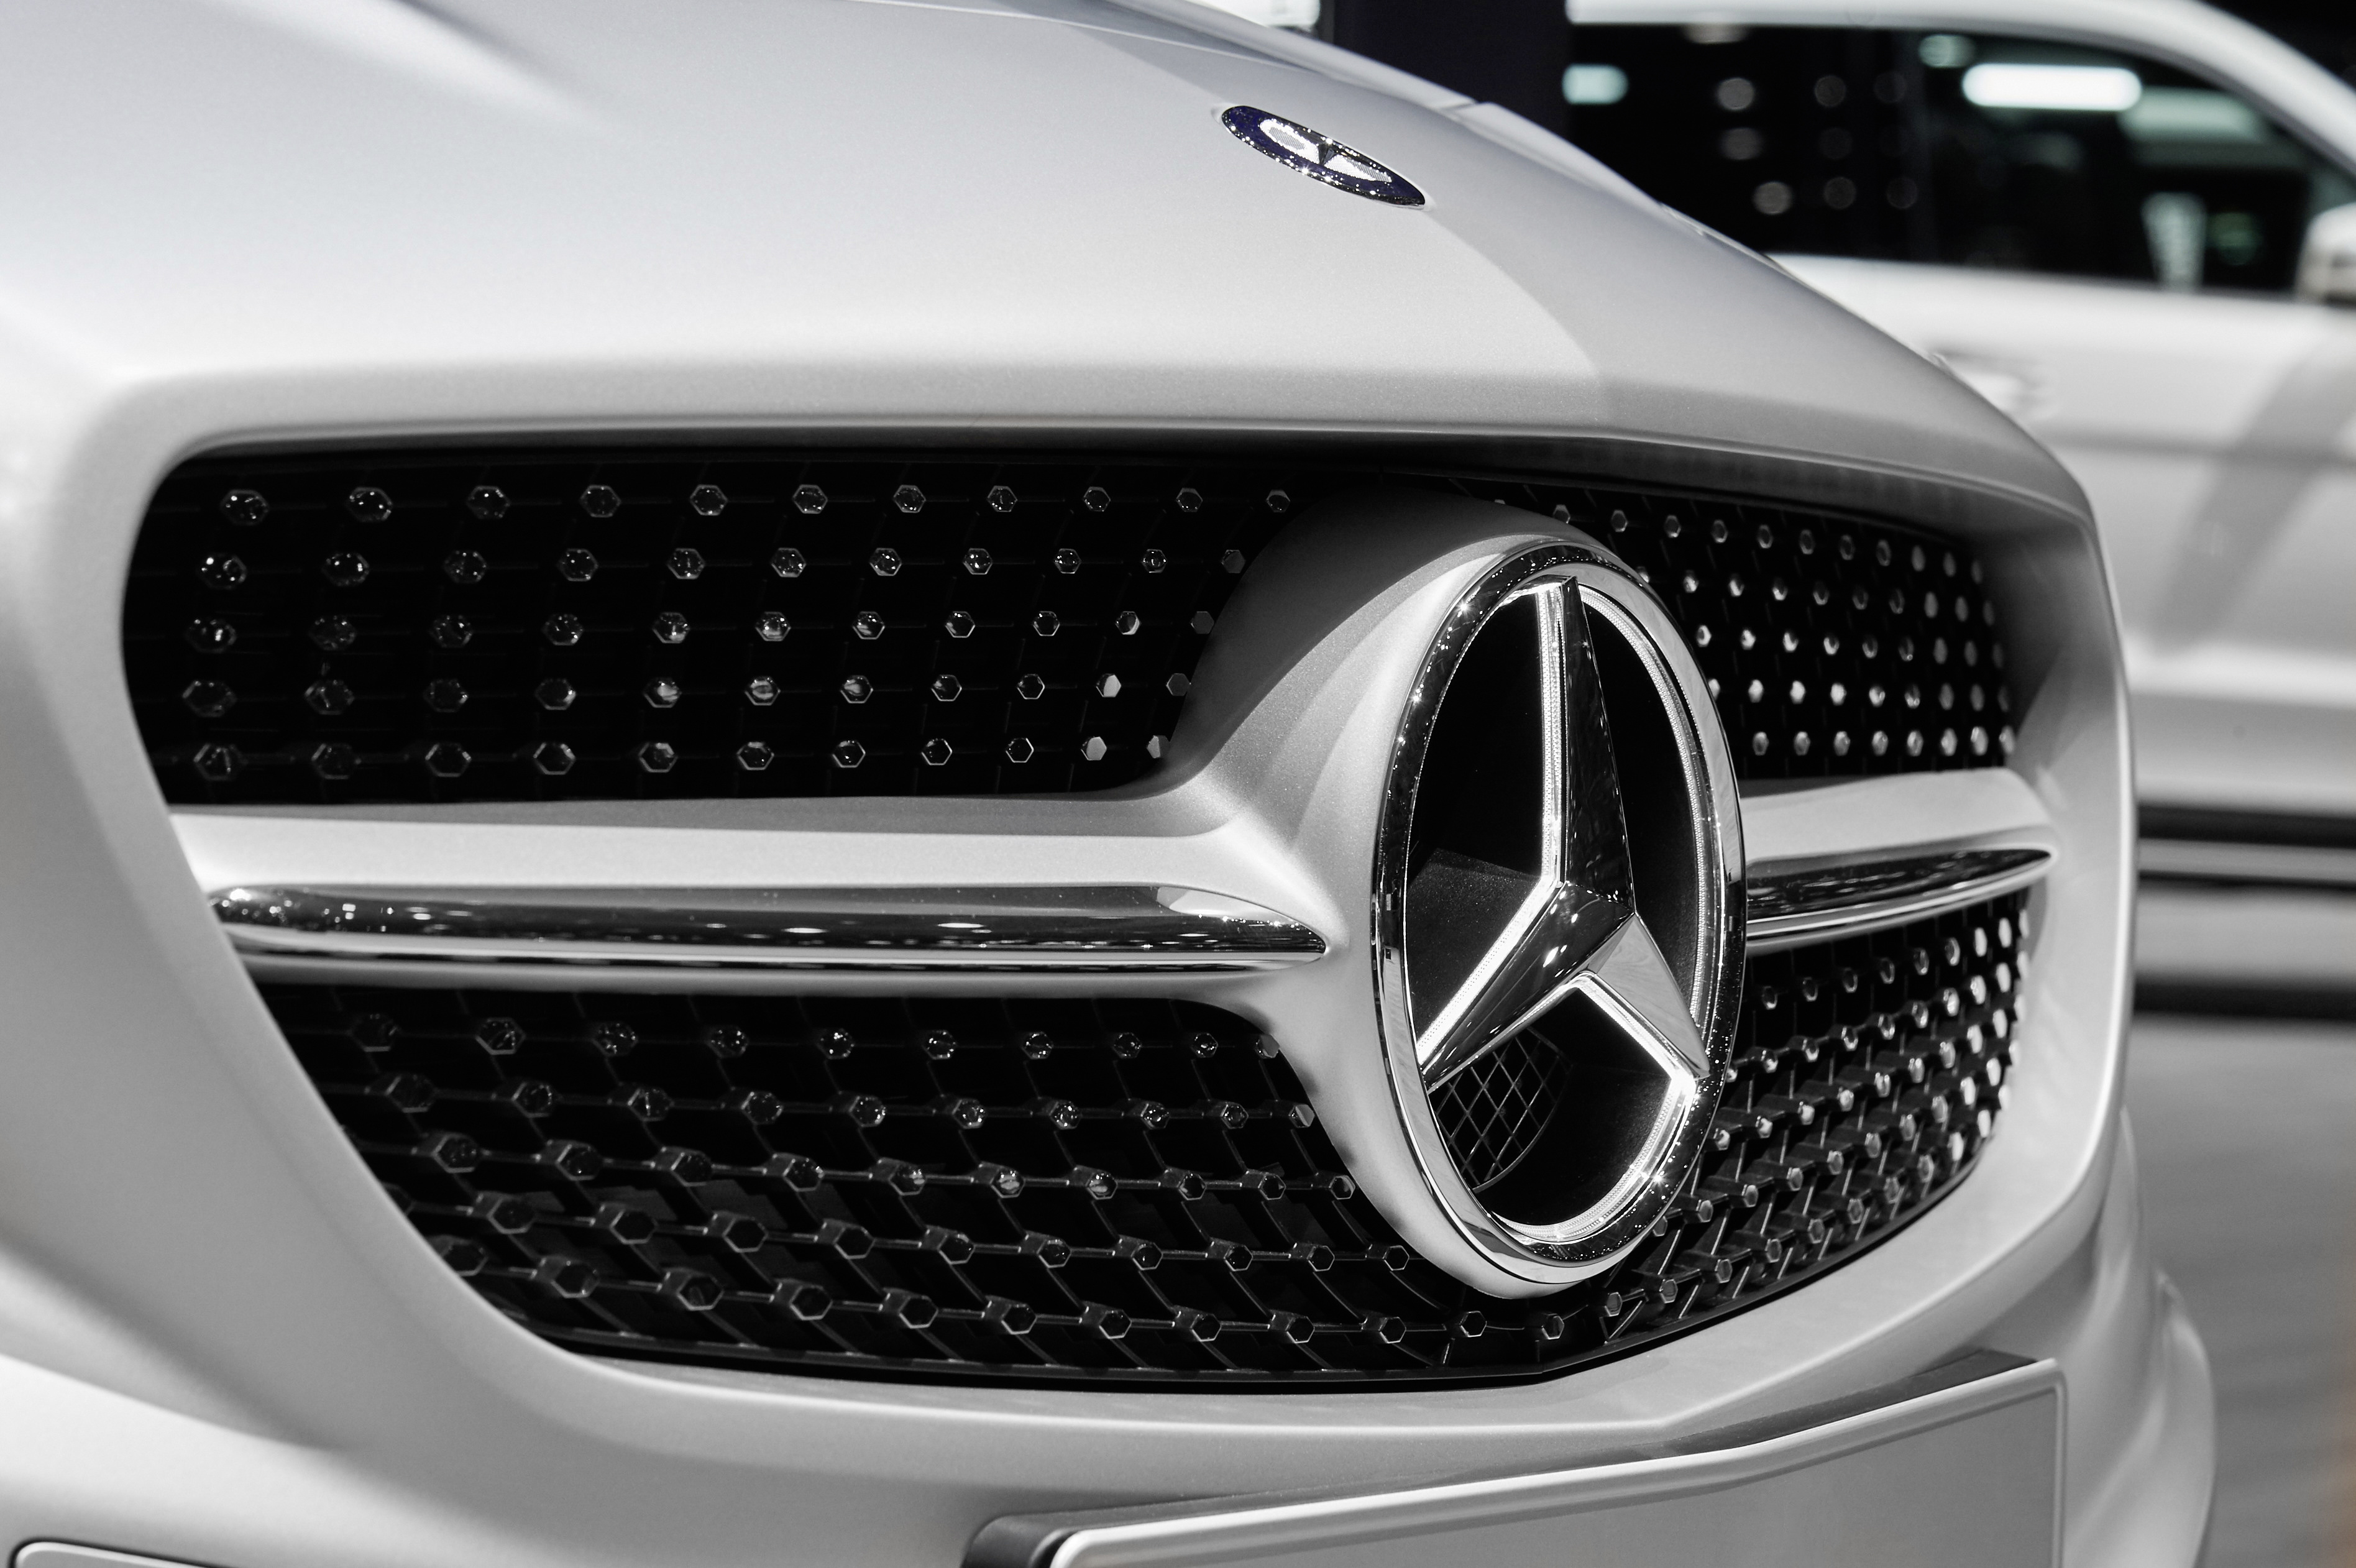 """Best Global Brands 2019"" – Mercedes-Benz is once again the world's most valuable luxury car brand"